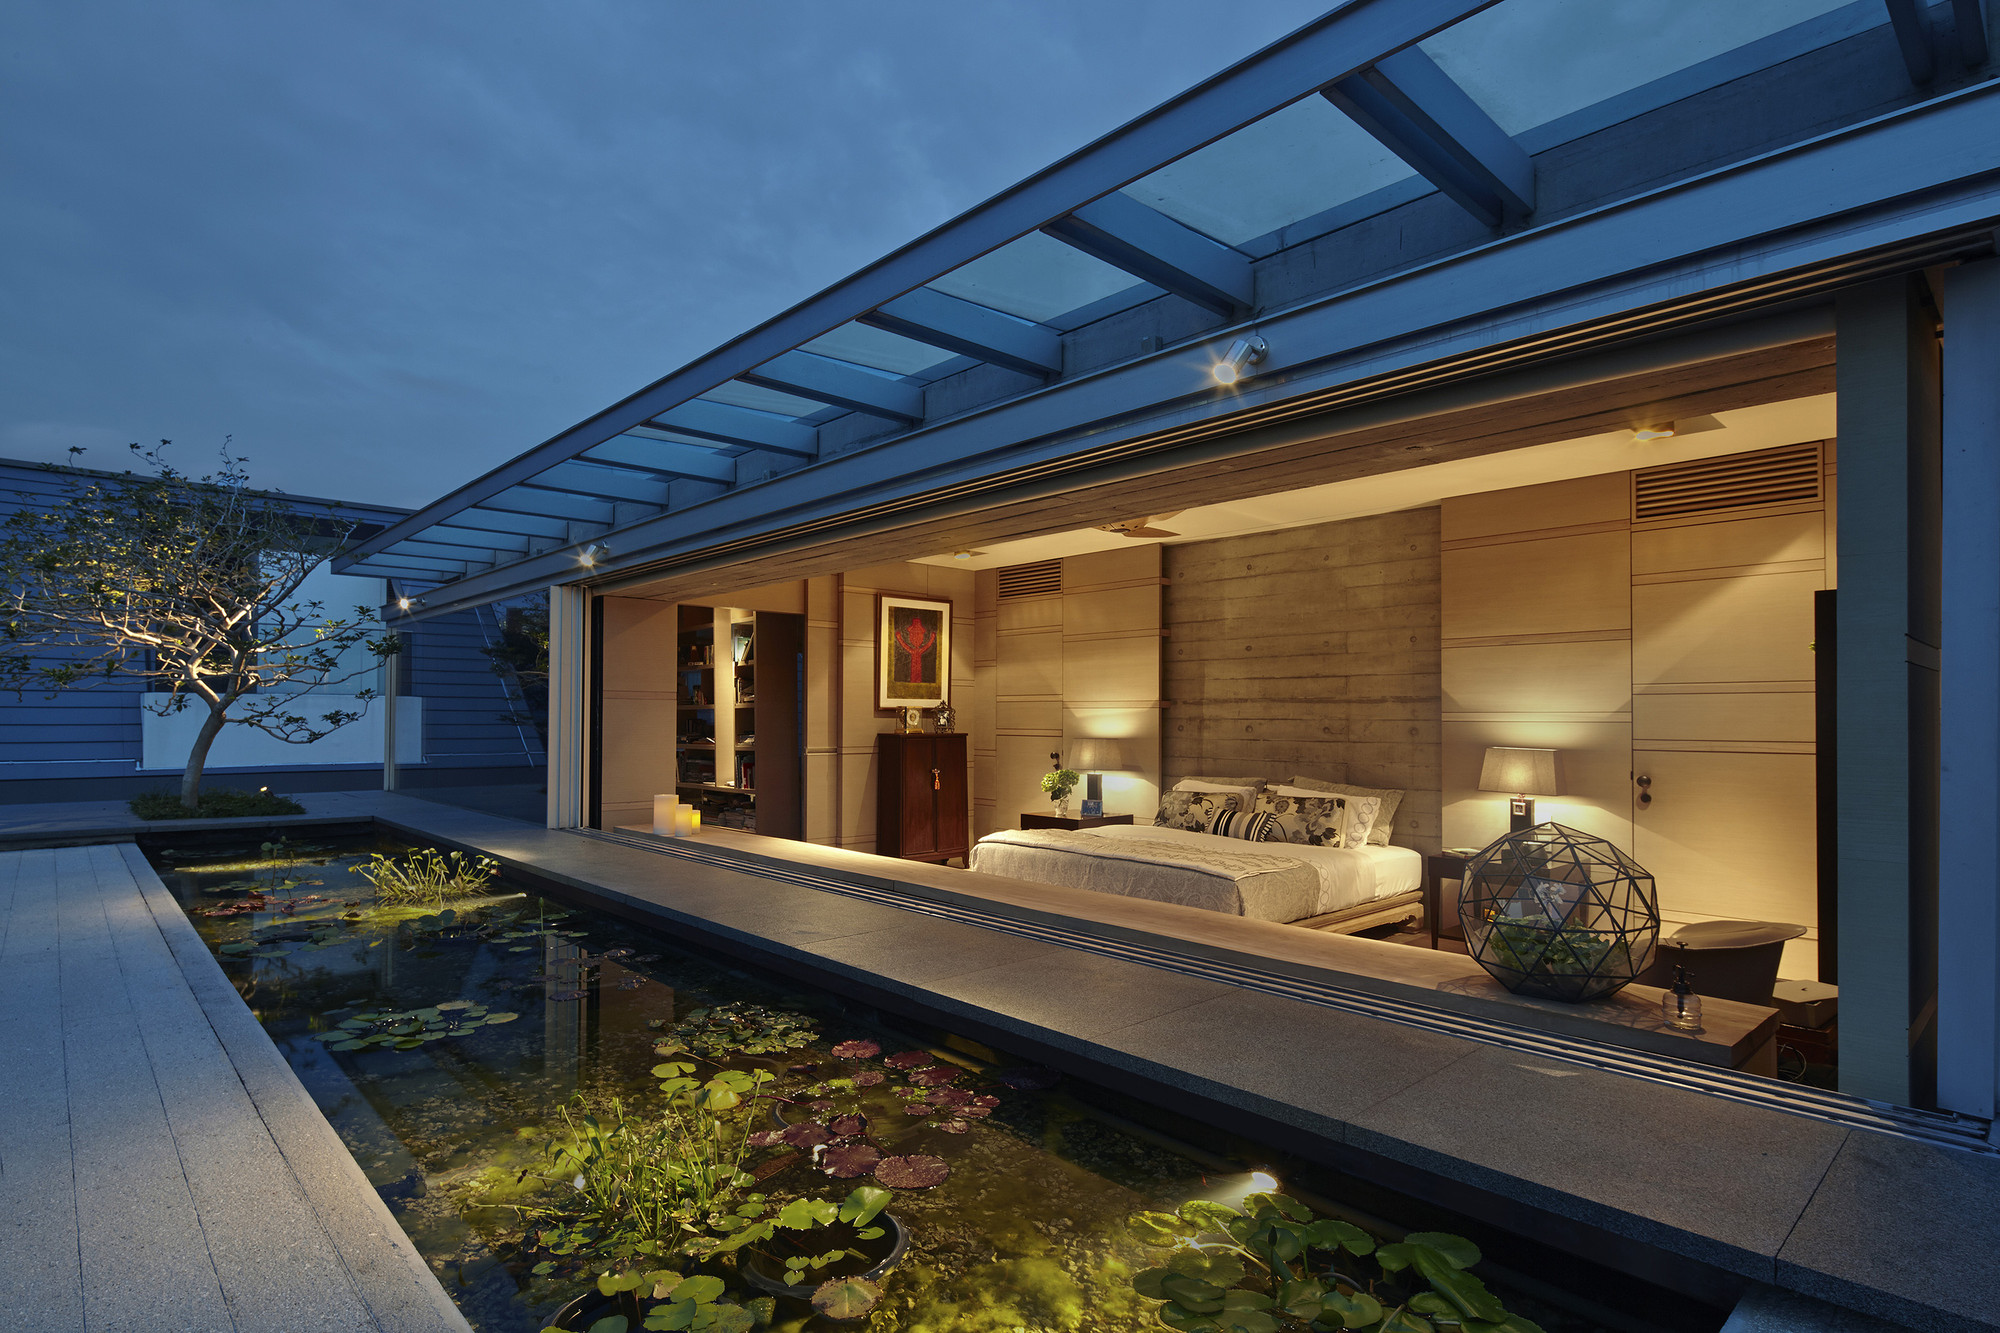 Casa Chiltern / WOW Architects | Warner Wong Design, © Aaron Pocock